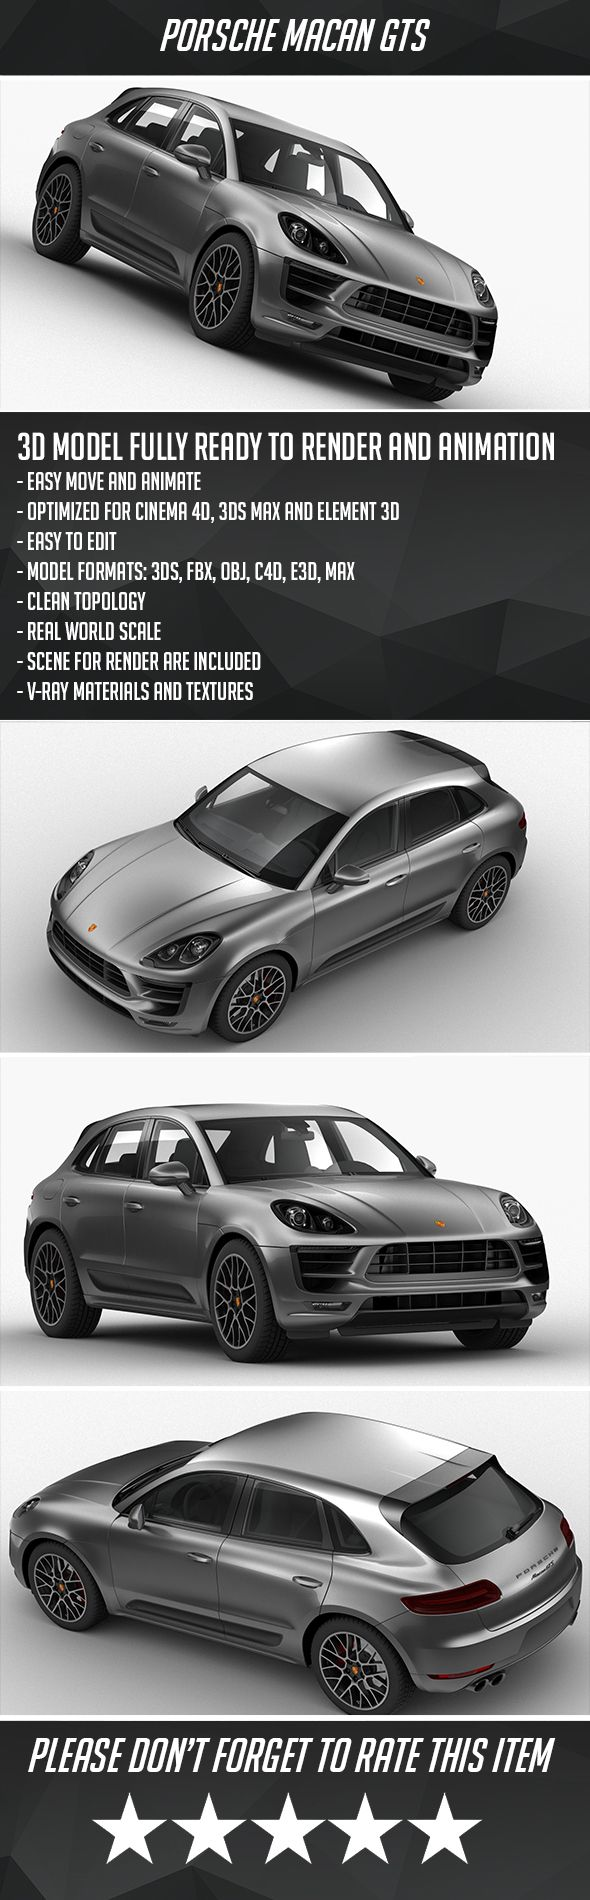 Porsche Macan GTS 2018. Fully editable and reusable 3D model of a car. #3D #3DMo…